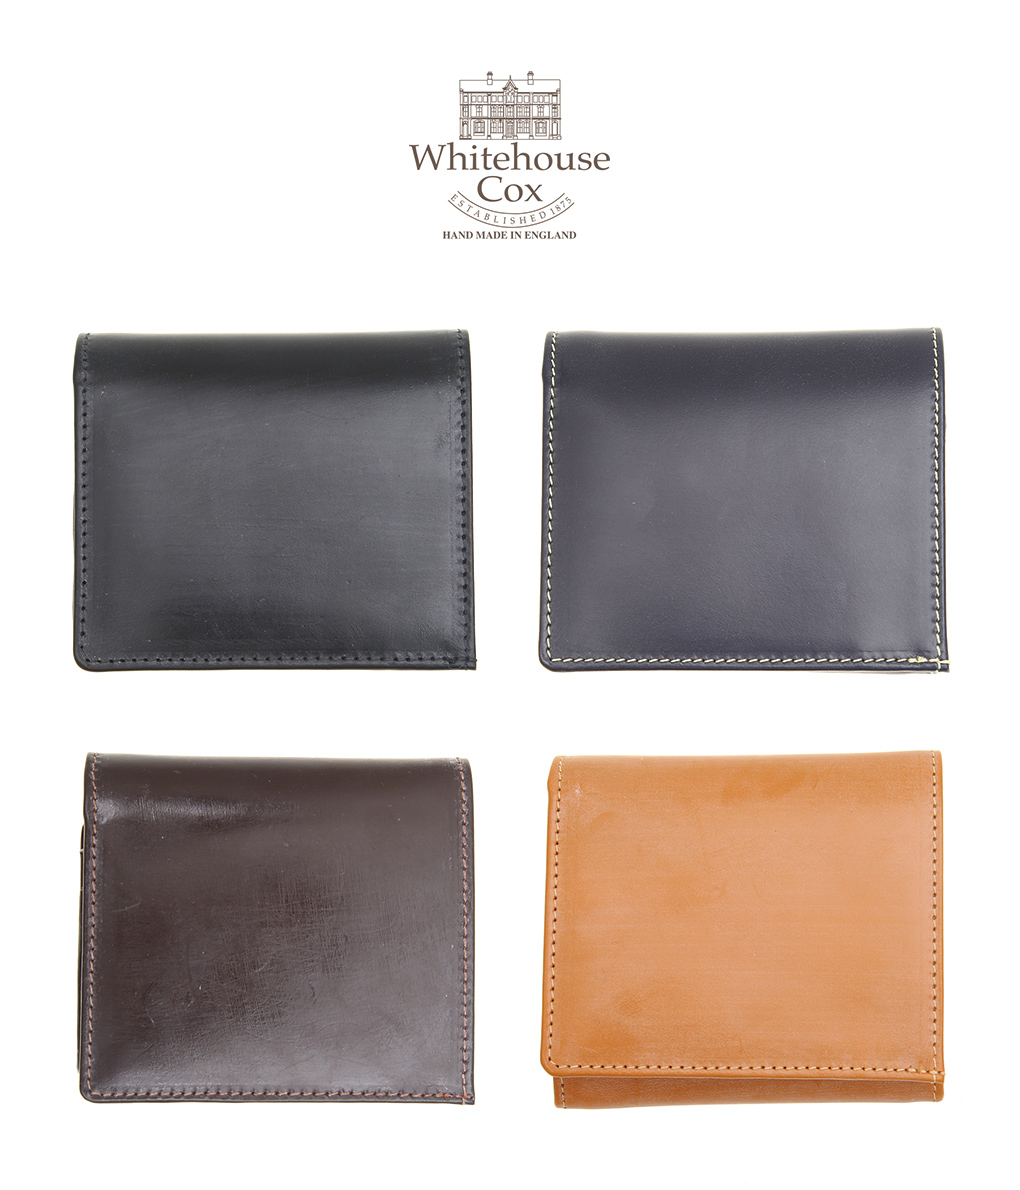 Whitehouse Cox / ホワイトハウスコックス : BRIDLE COMPACT WALLET / 全4色 : レザー 財布 ウォレット : S1975 【MUS】